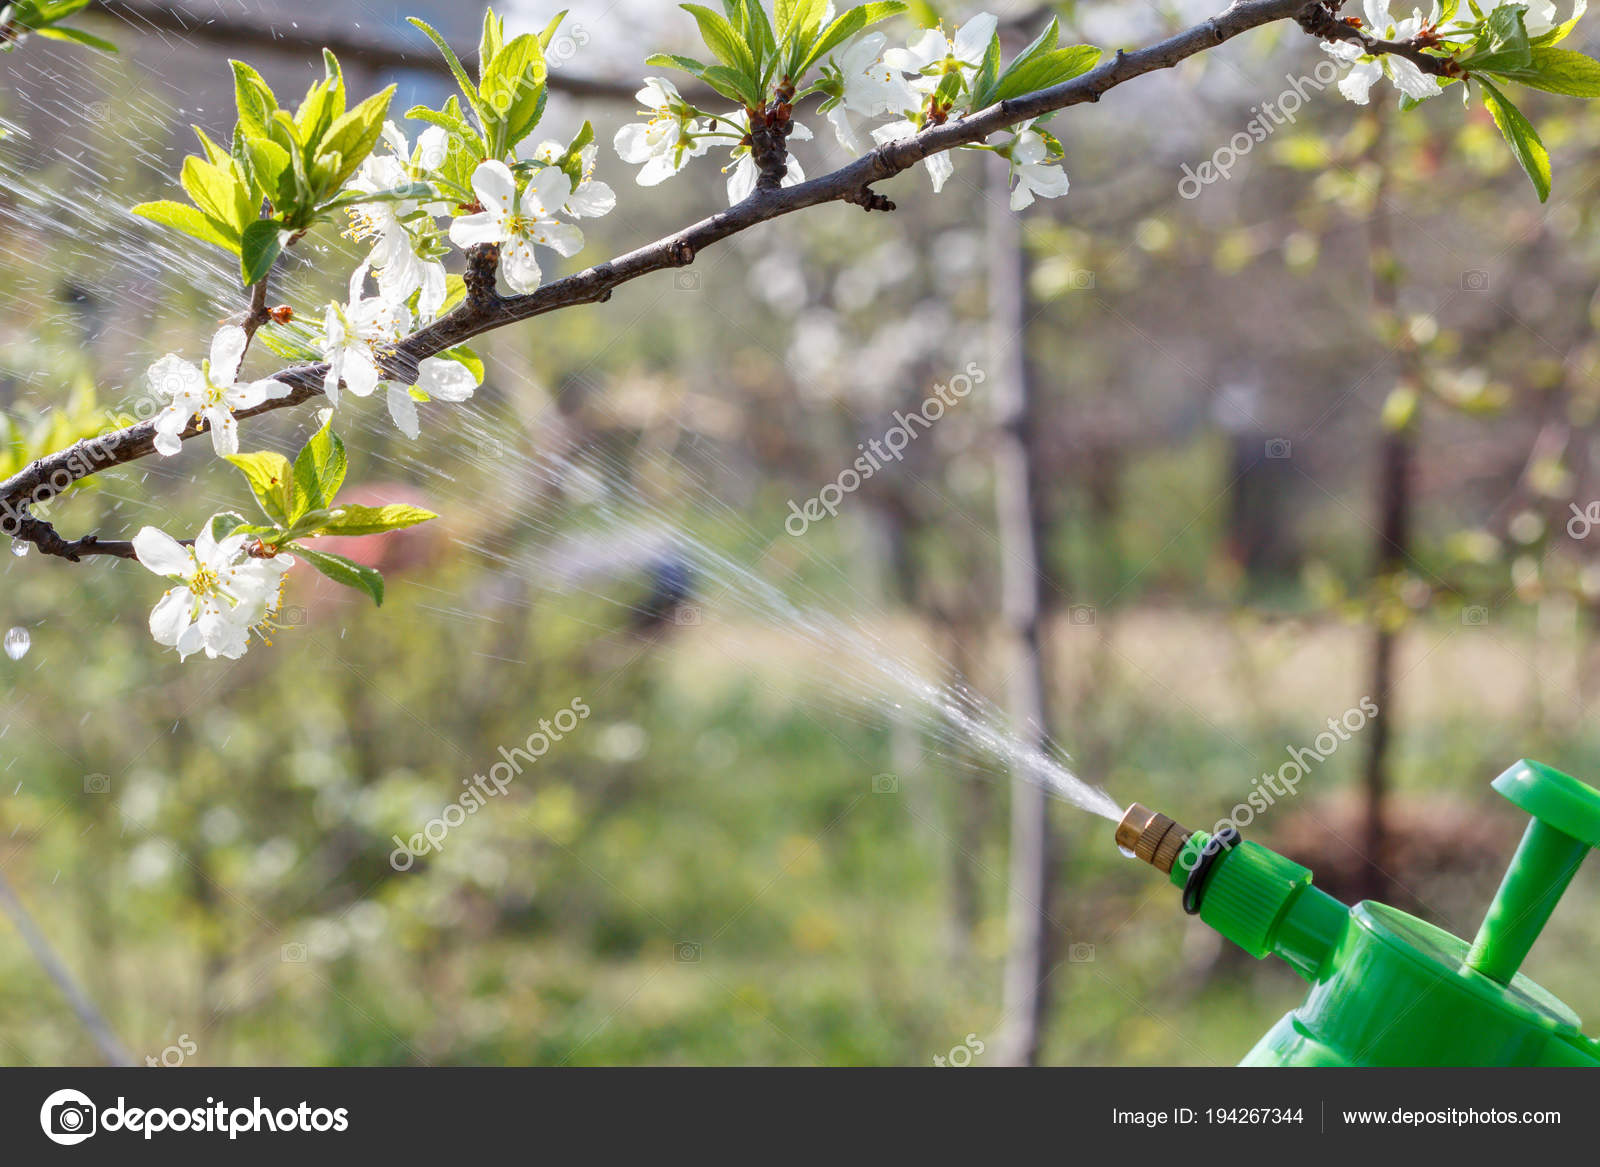 Farmer Sprinkling Water Solution Branches Pump Tree White Flowers